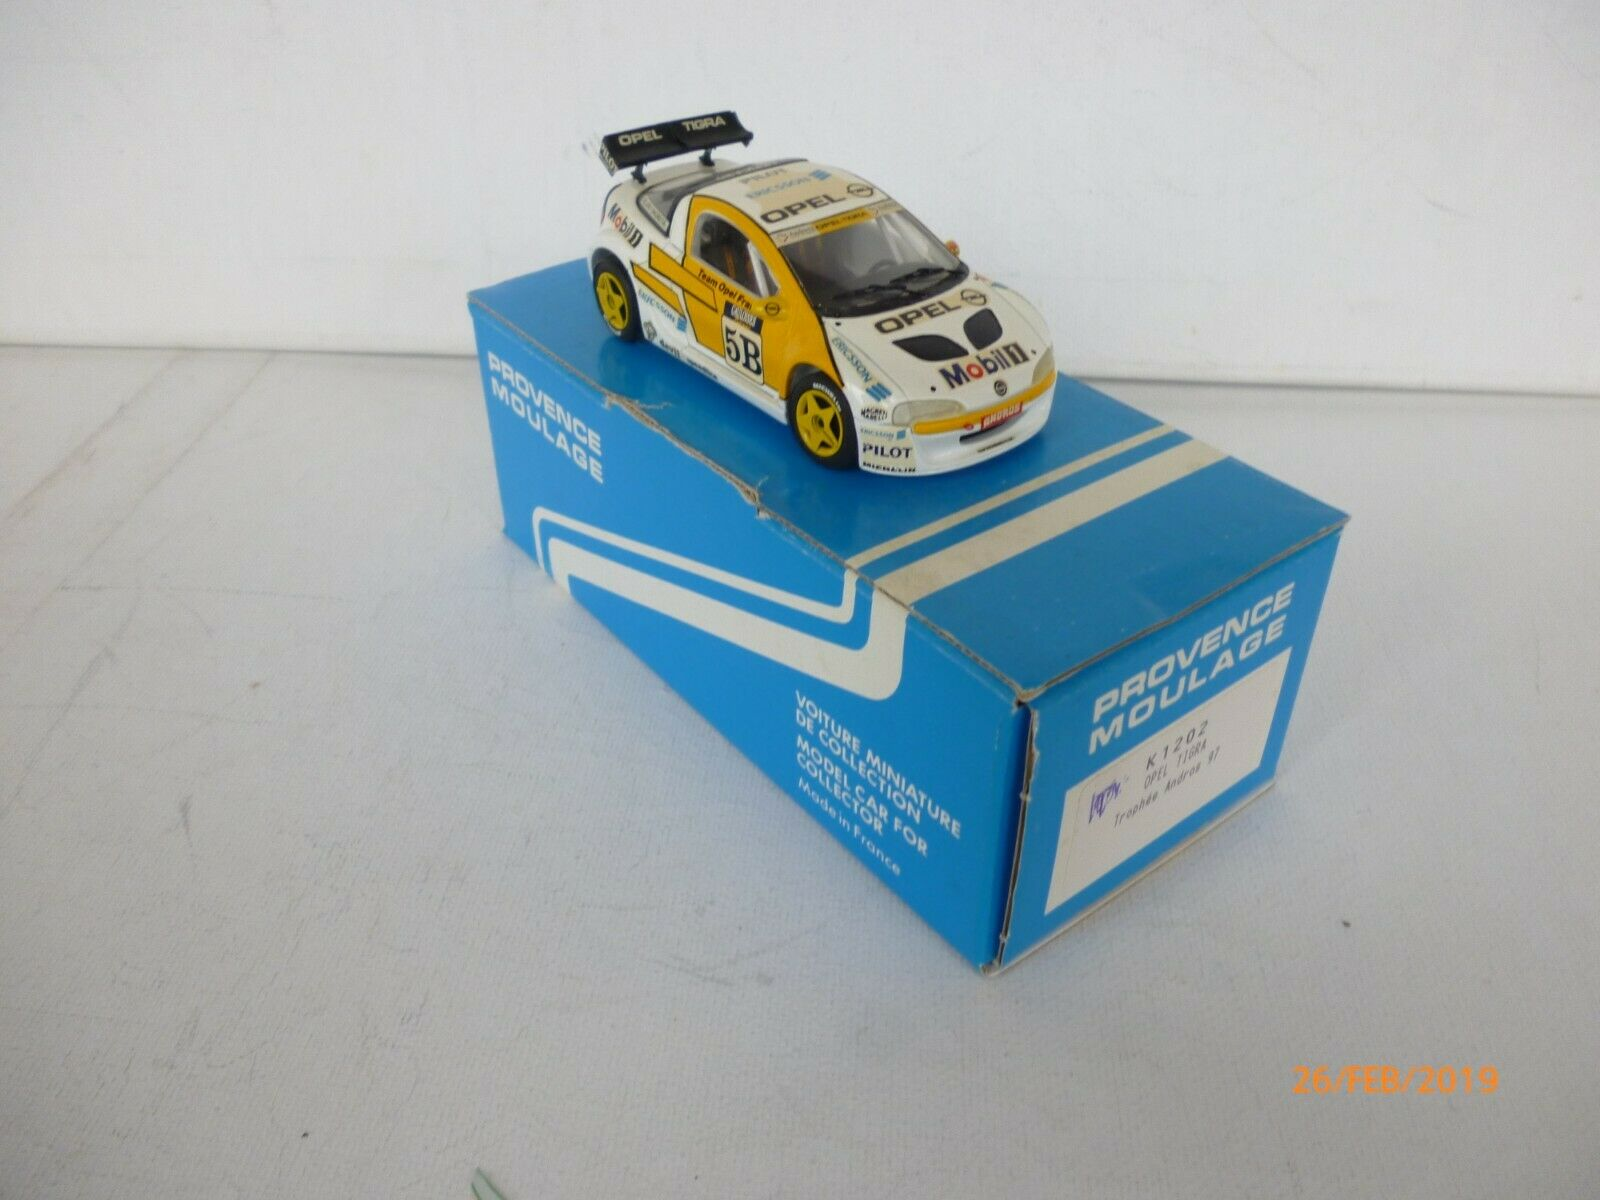 PROVENCE MOULAGE  KIT OPEL TIGRA MULLER - ANDROS 97 - 1 43 - IN BOX